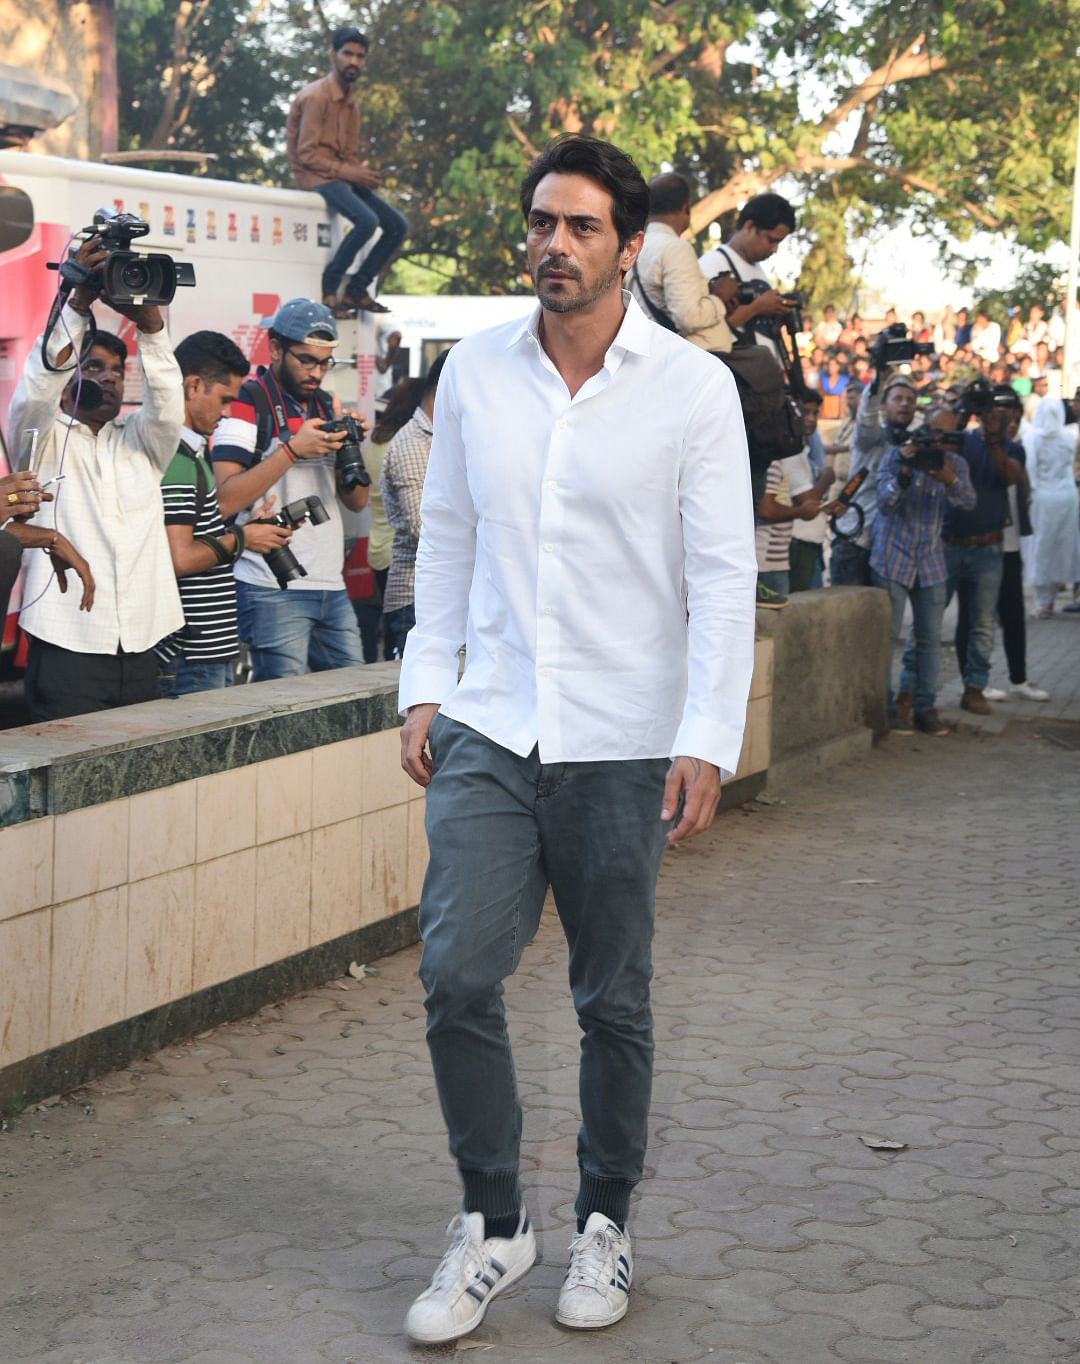 Arjun Rampal, who wrote a heartfelt goodbye to the late actor on social media, also came to pay his respects. (Photo: Yogen Shah)